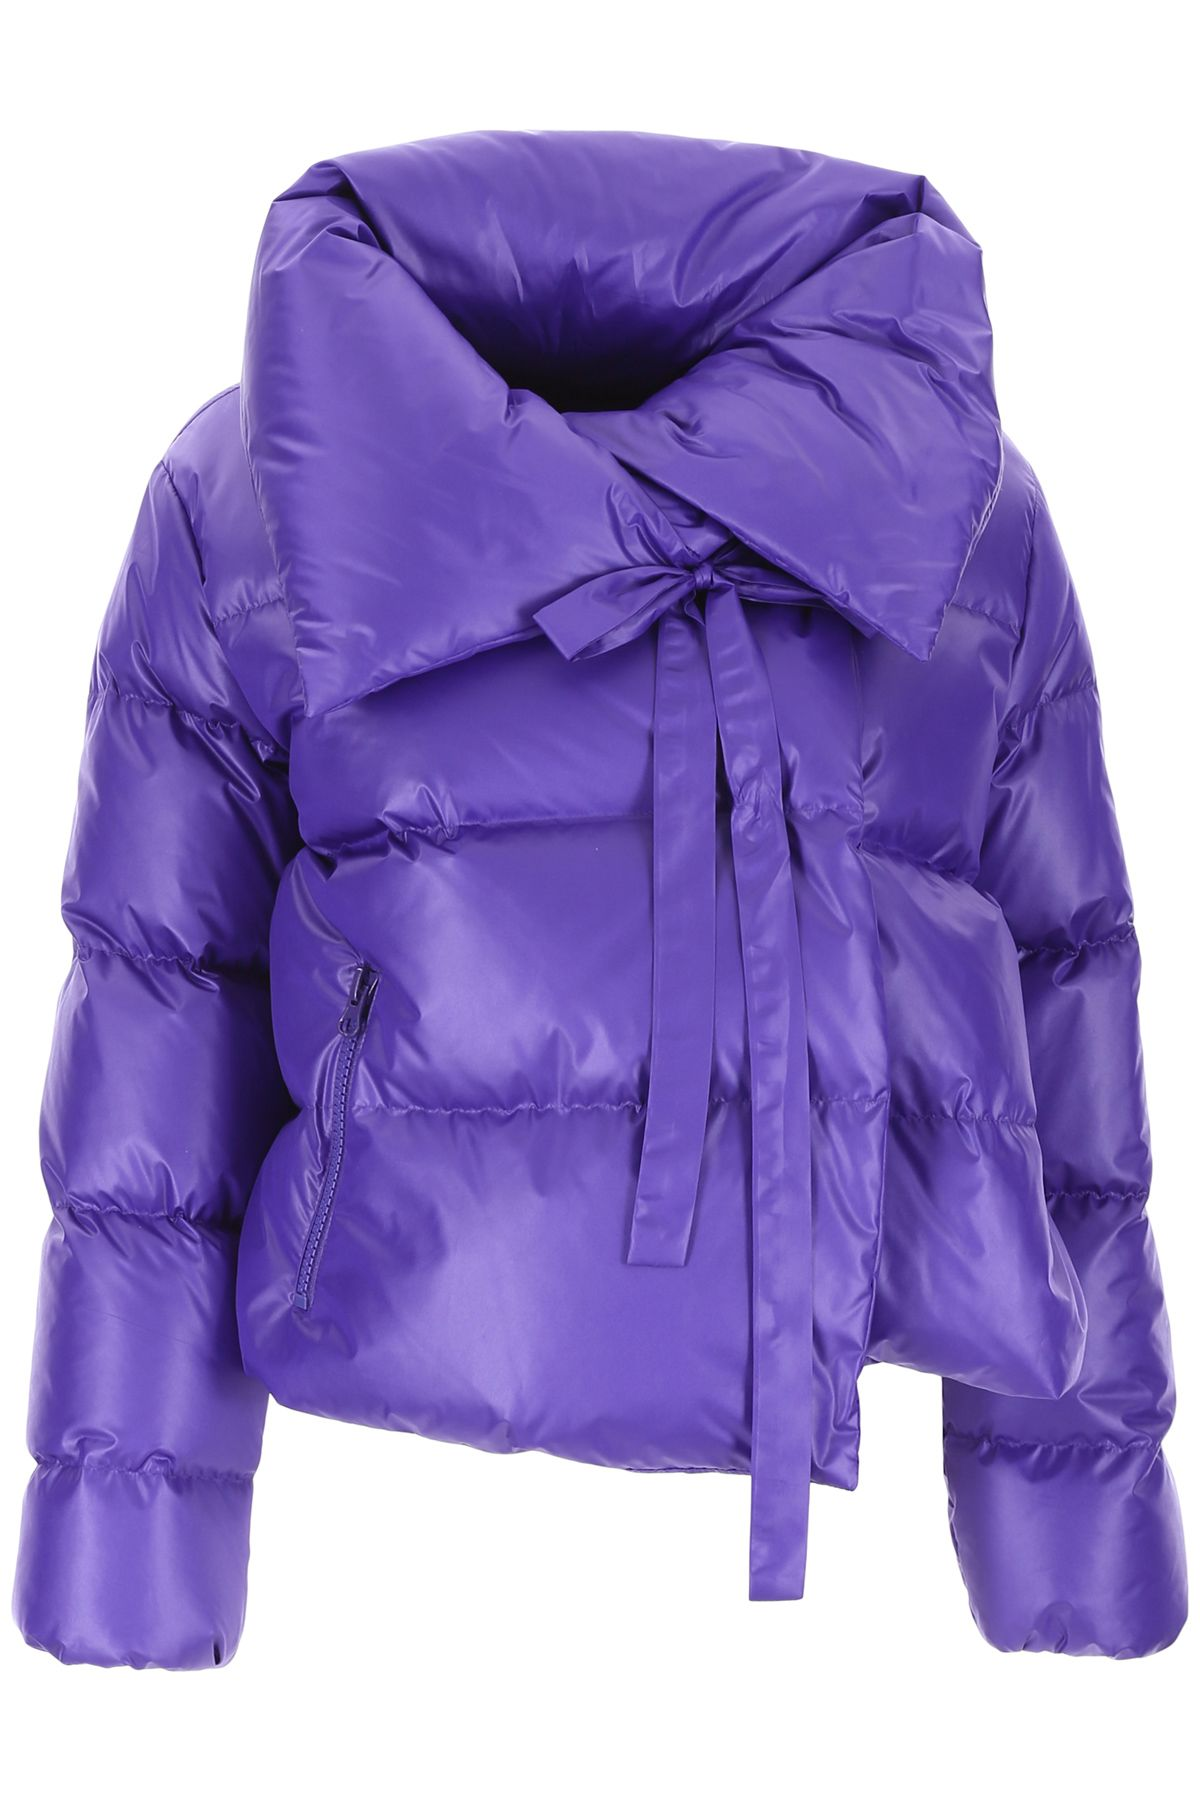 BACON CLOTHING Puffer Jacket With Bow in Purple